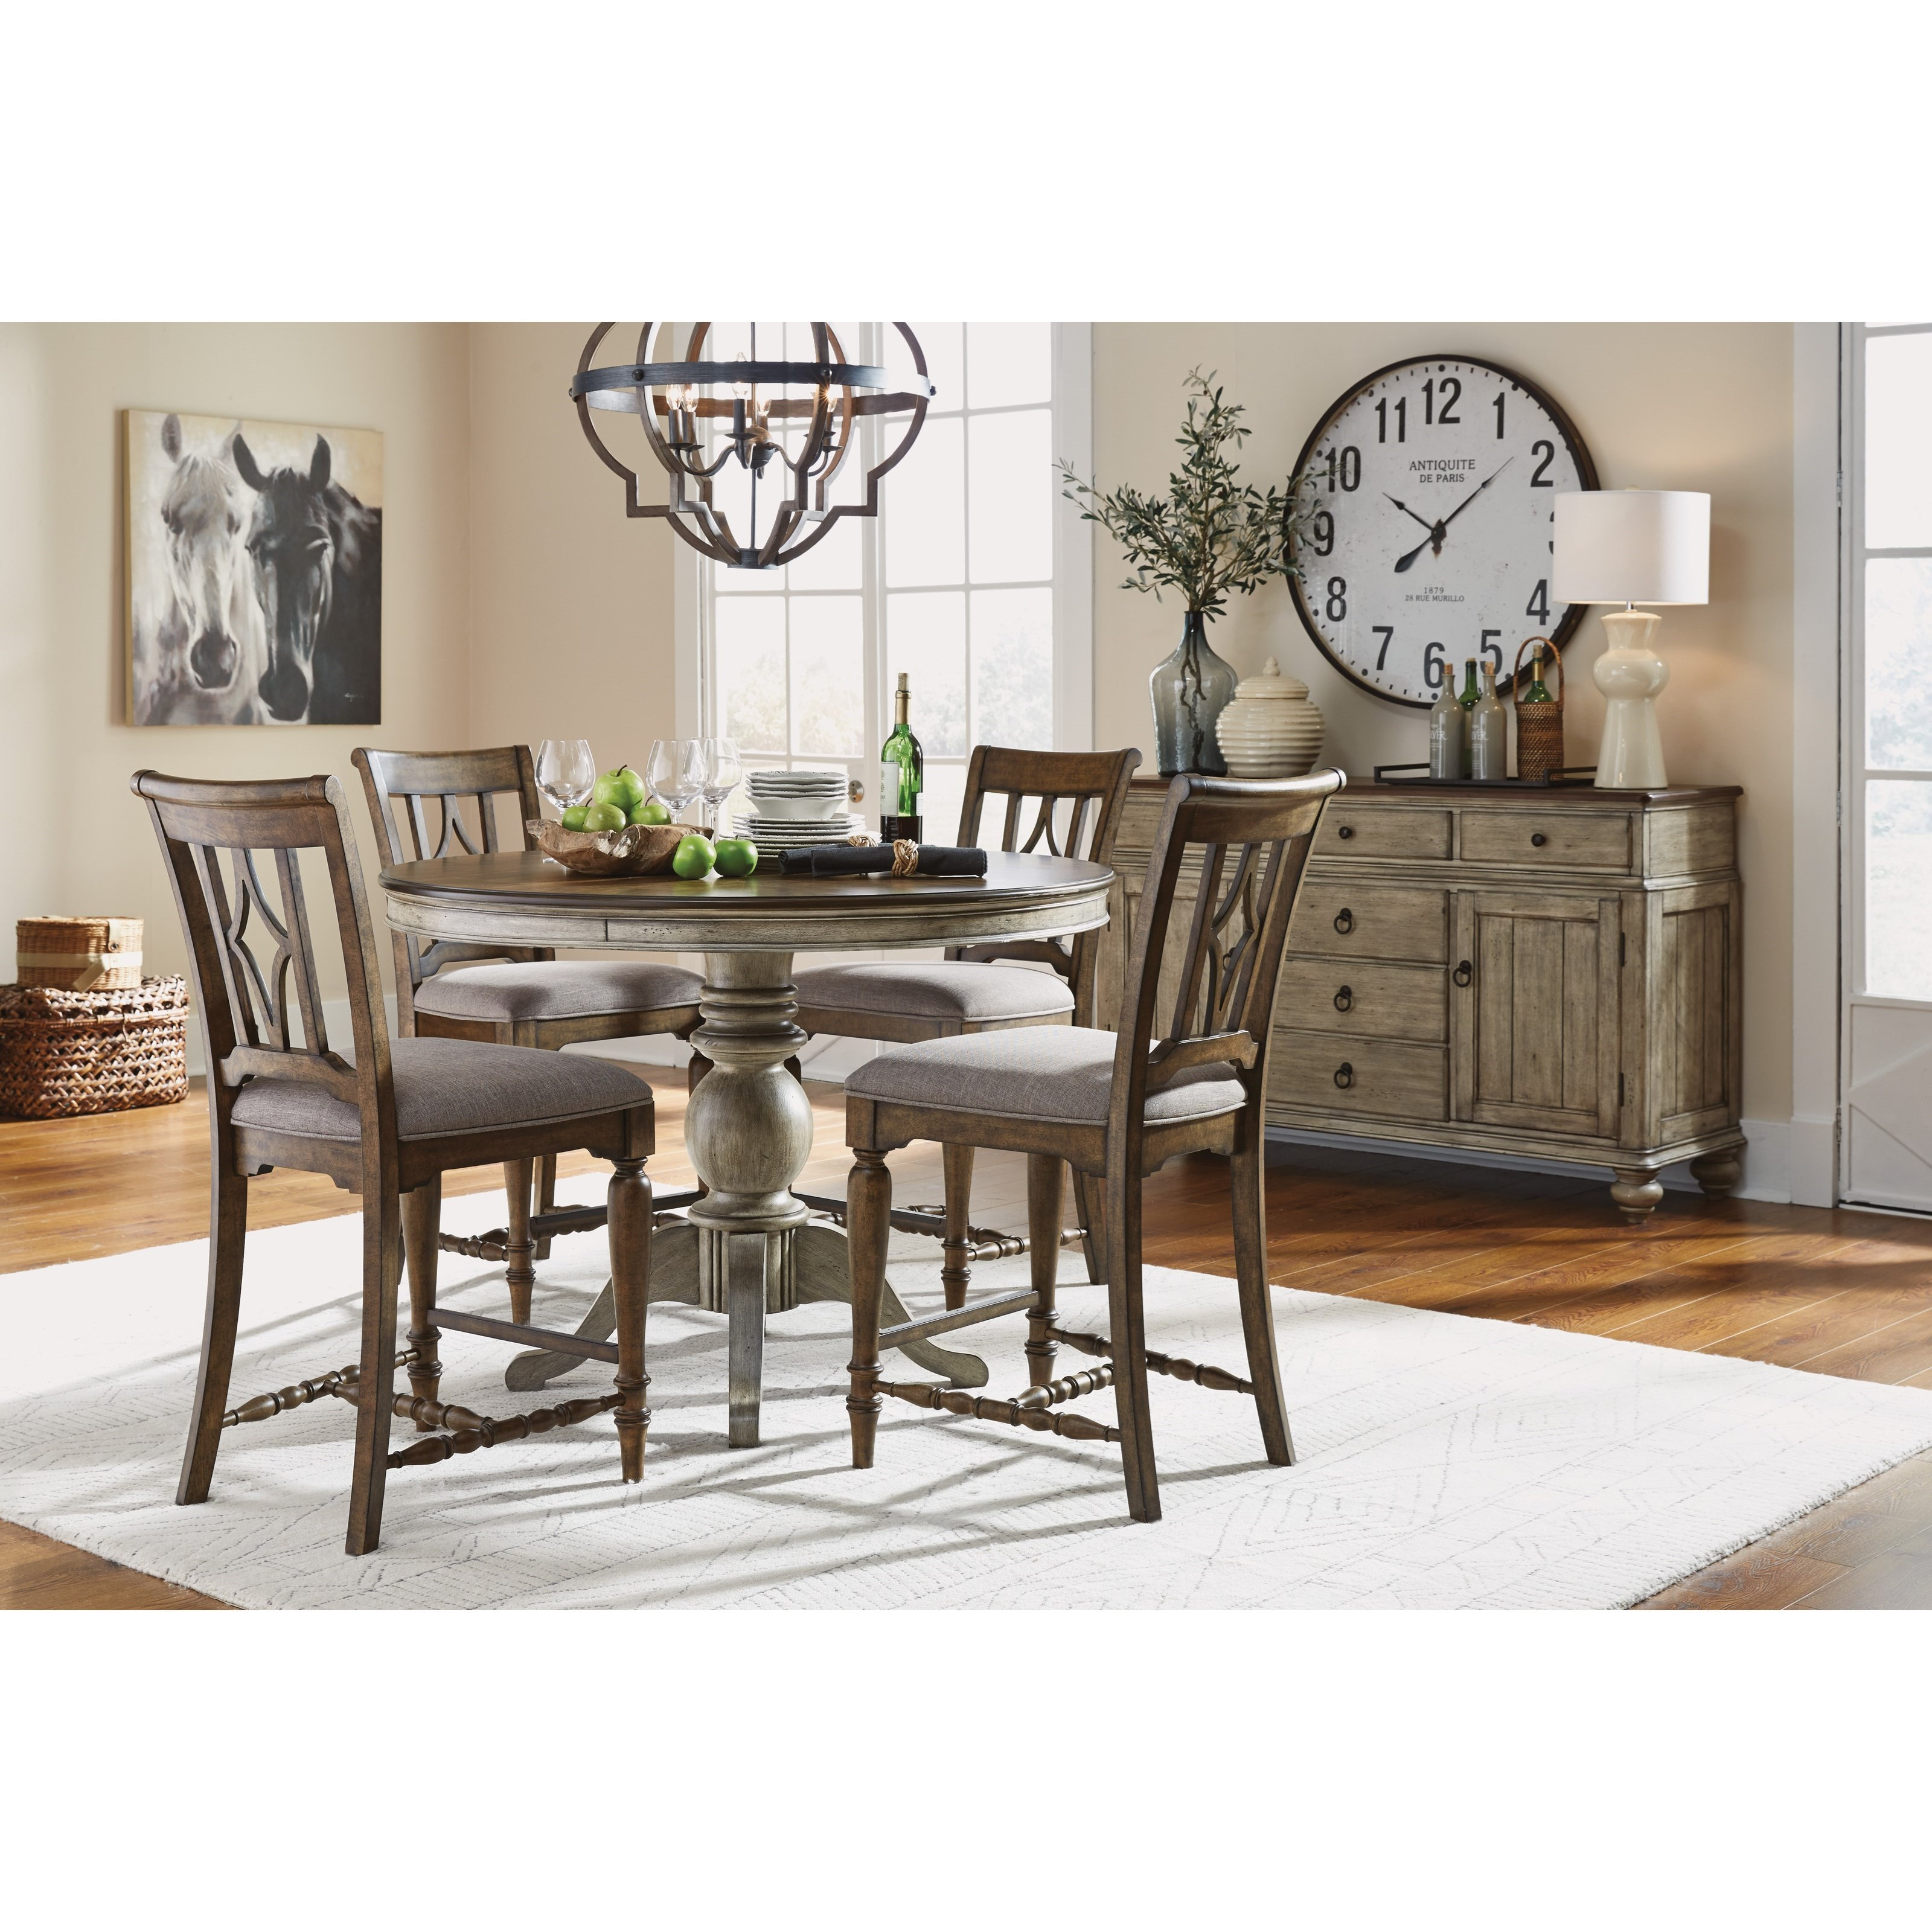 Plymouth Counter Height Dining Room Group by Flexsteel Wynwood Collection at Fashion Furniture